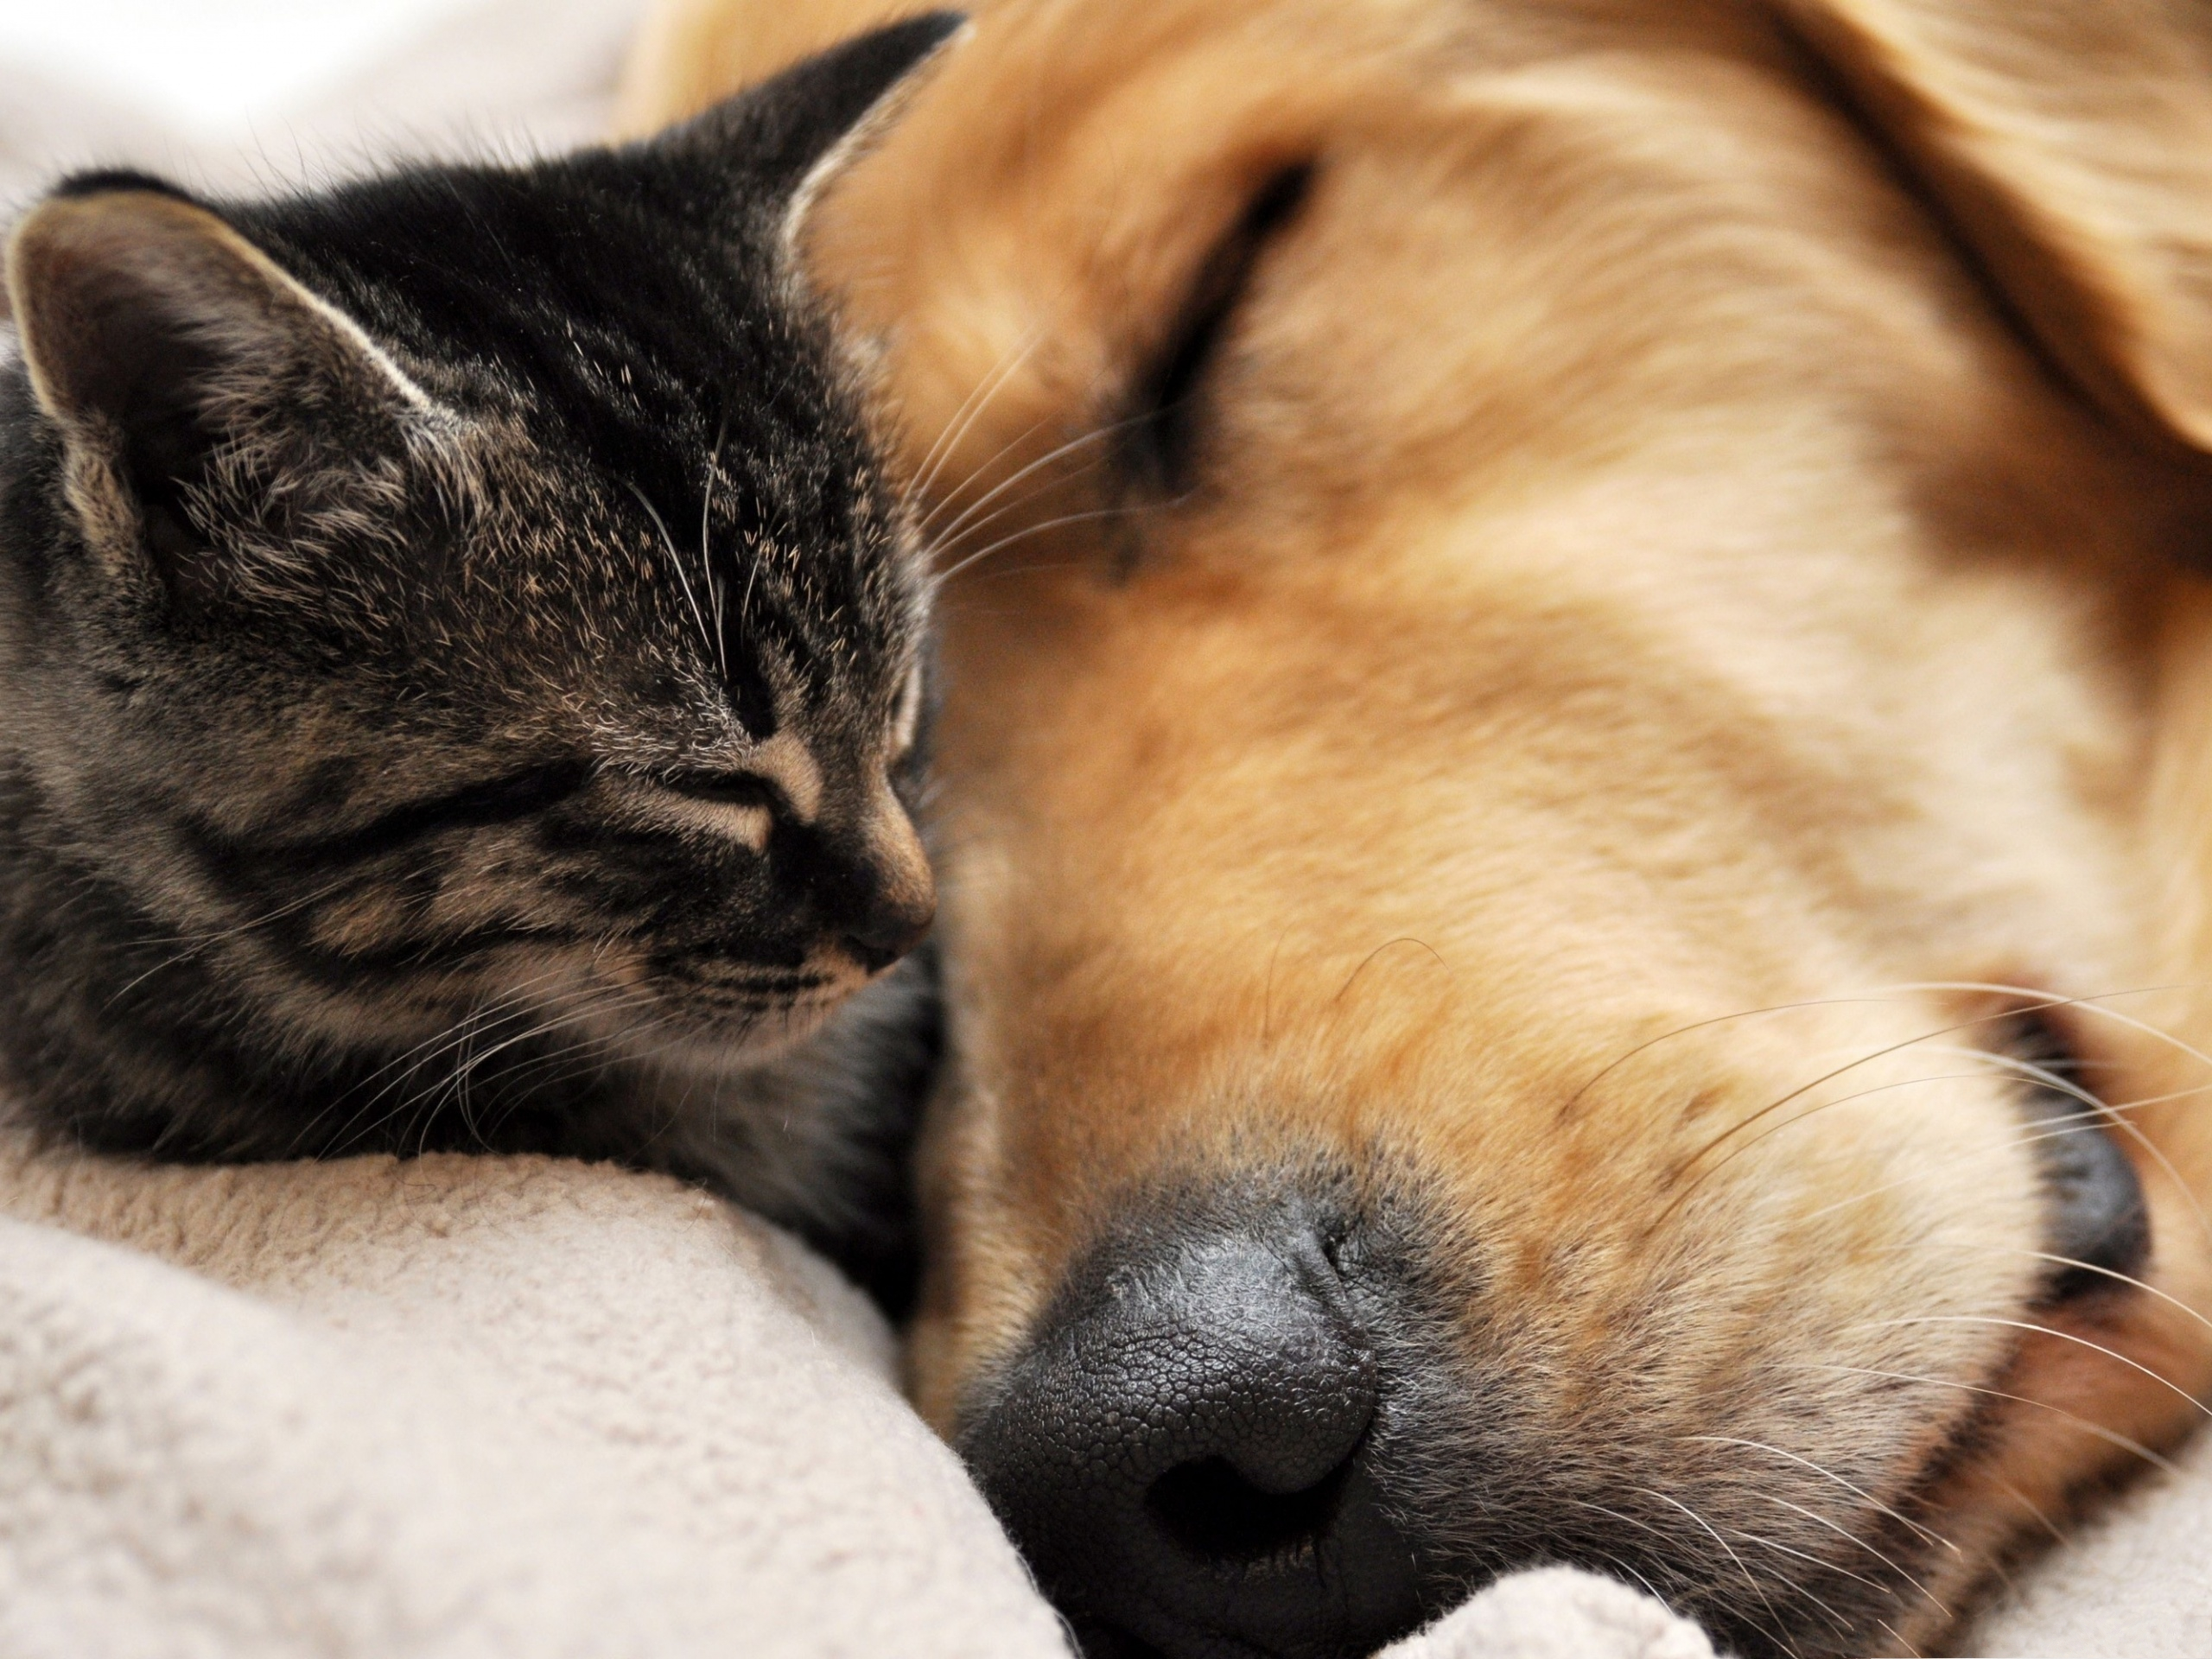 click to free download the wallpaper--Cute Cats Photography, Sleeping Kitten and Puppy, Close to Each Other 2560X1920 free wallpaper download